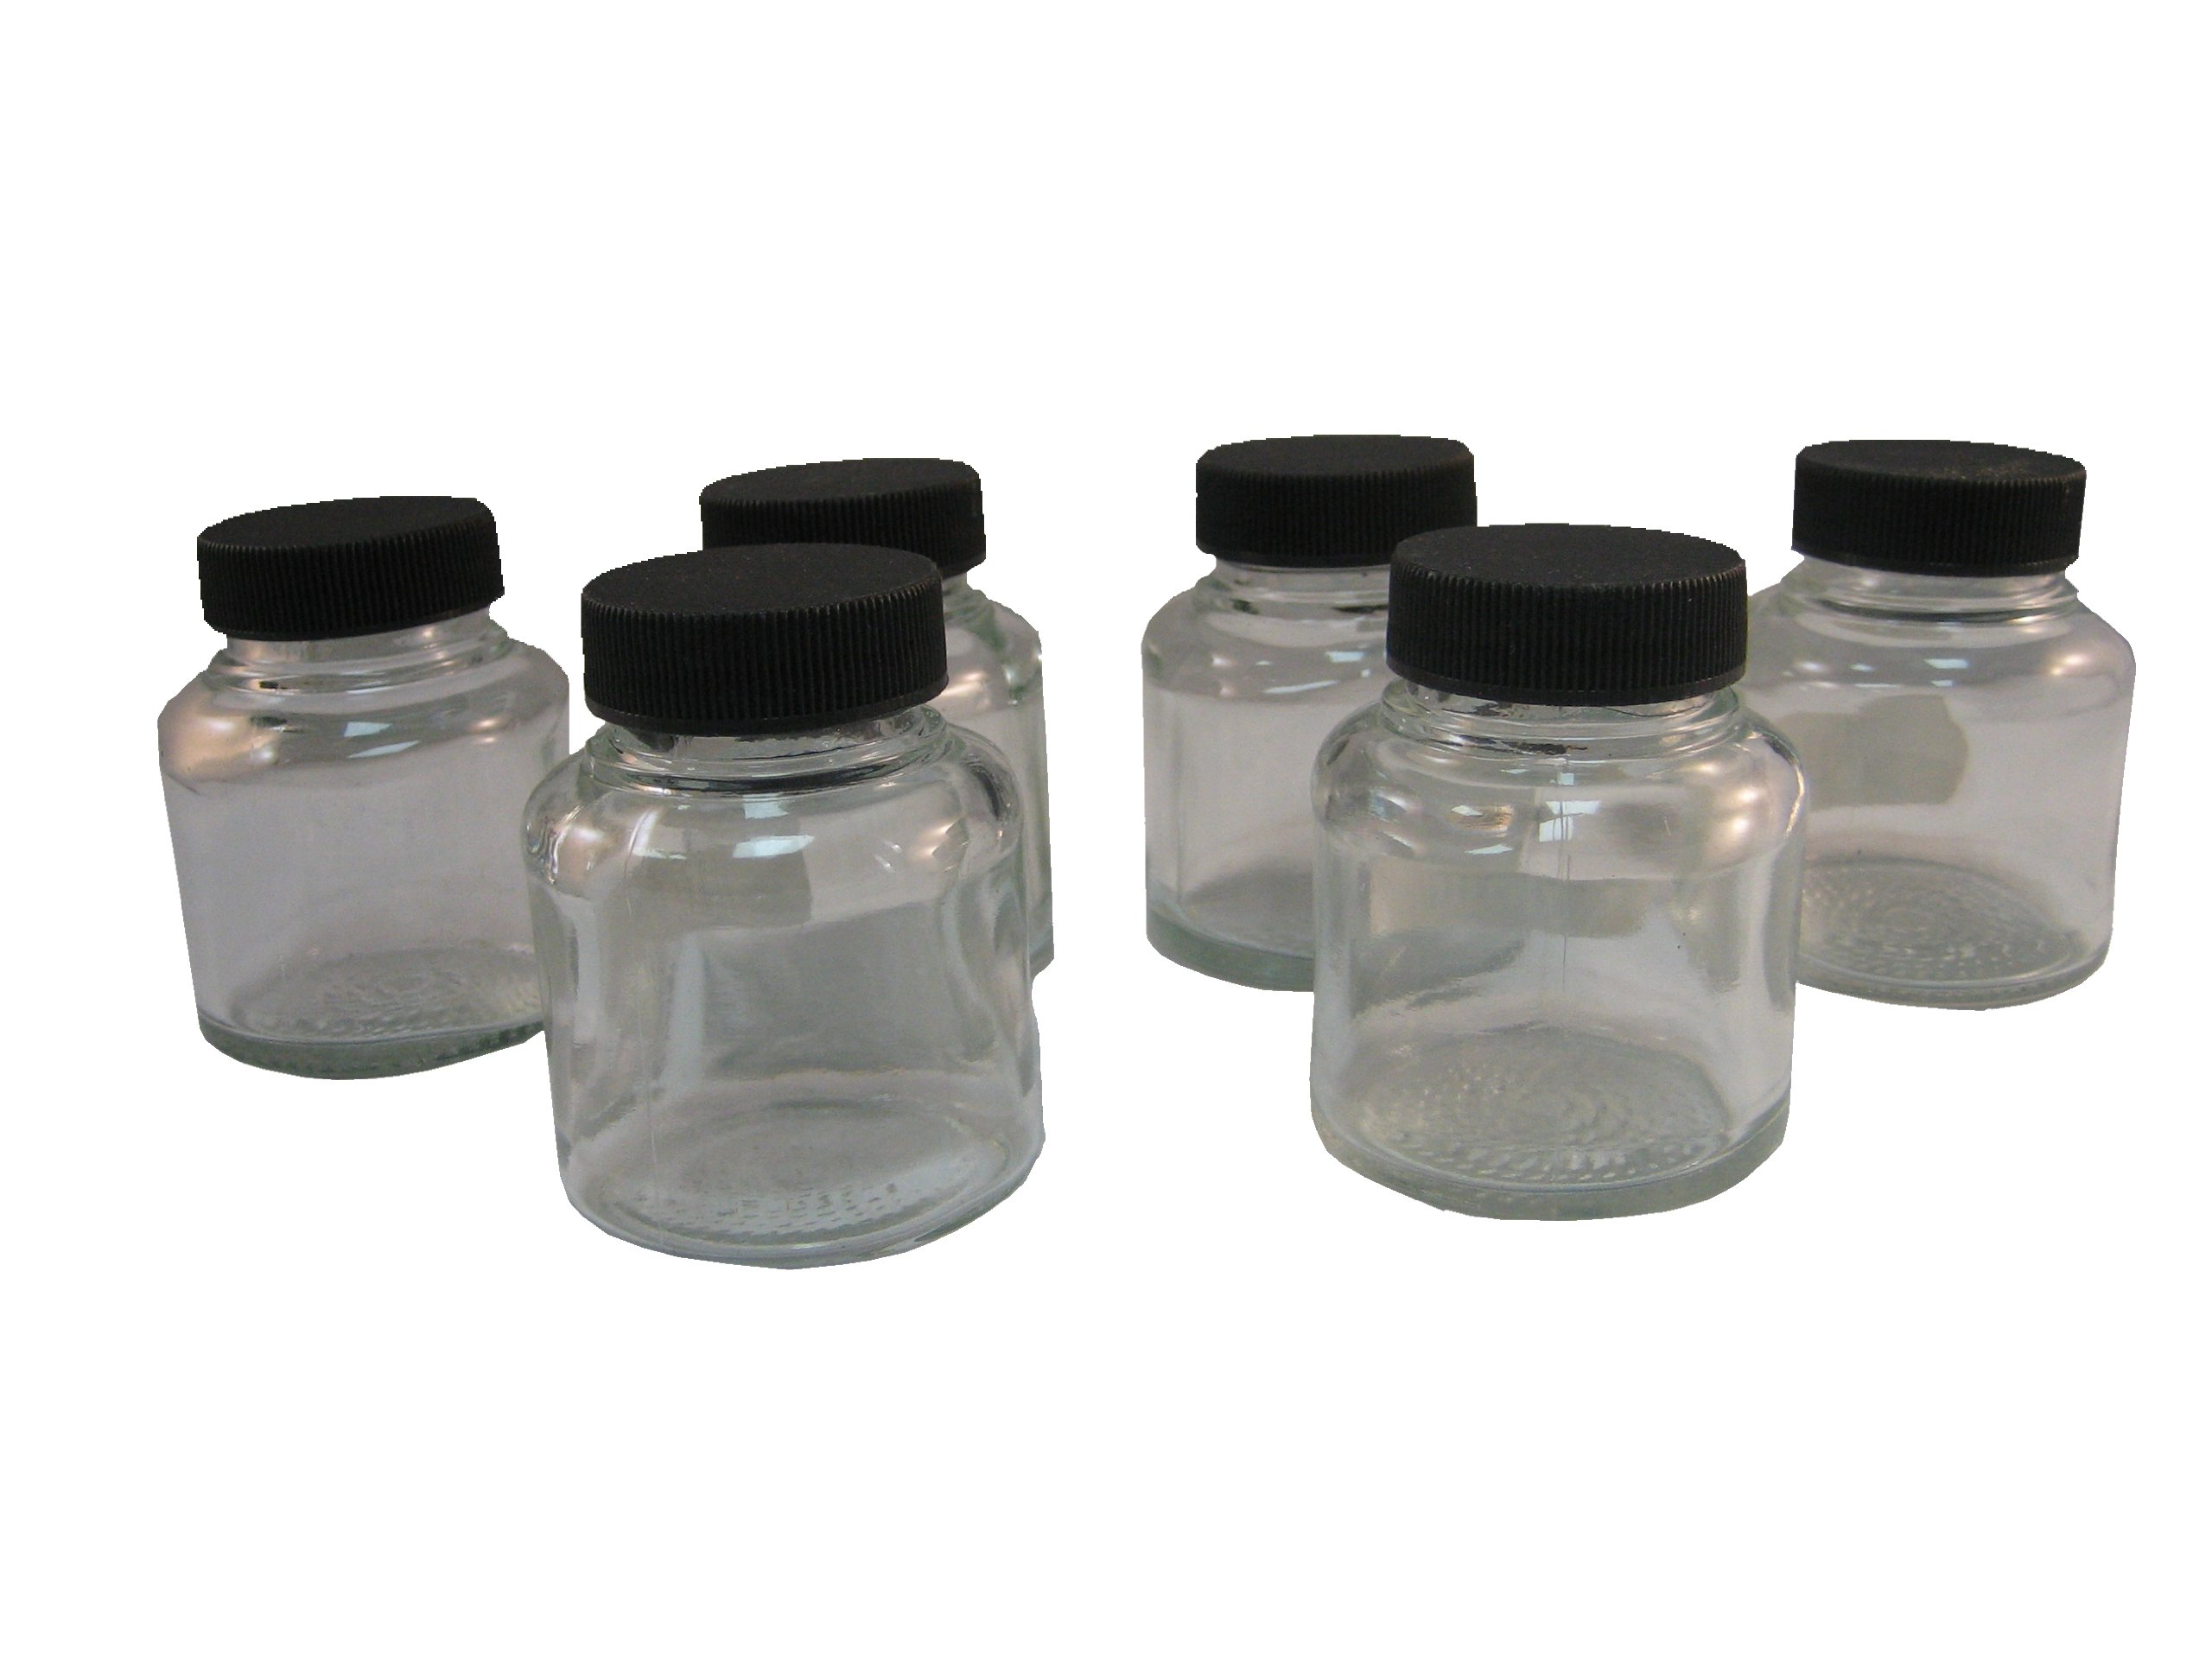 Badger Air-Brush Co. 50-0053B 2-Ounce Jar and Cover, Box of 6